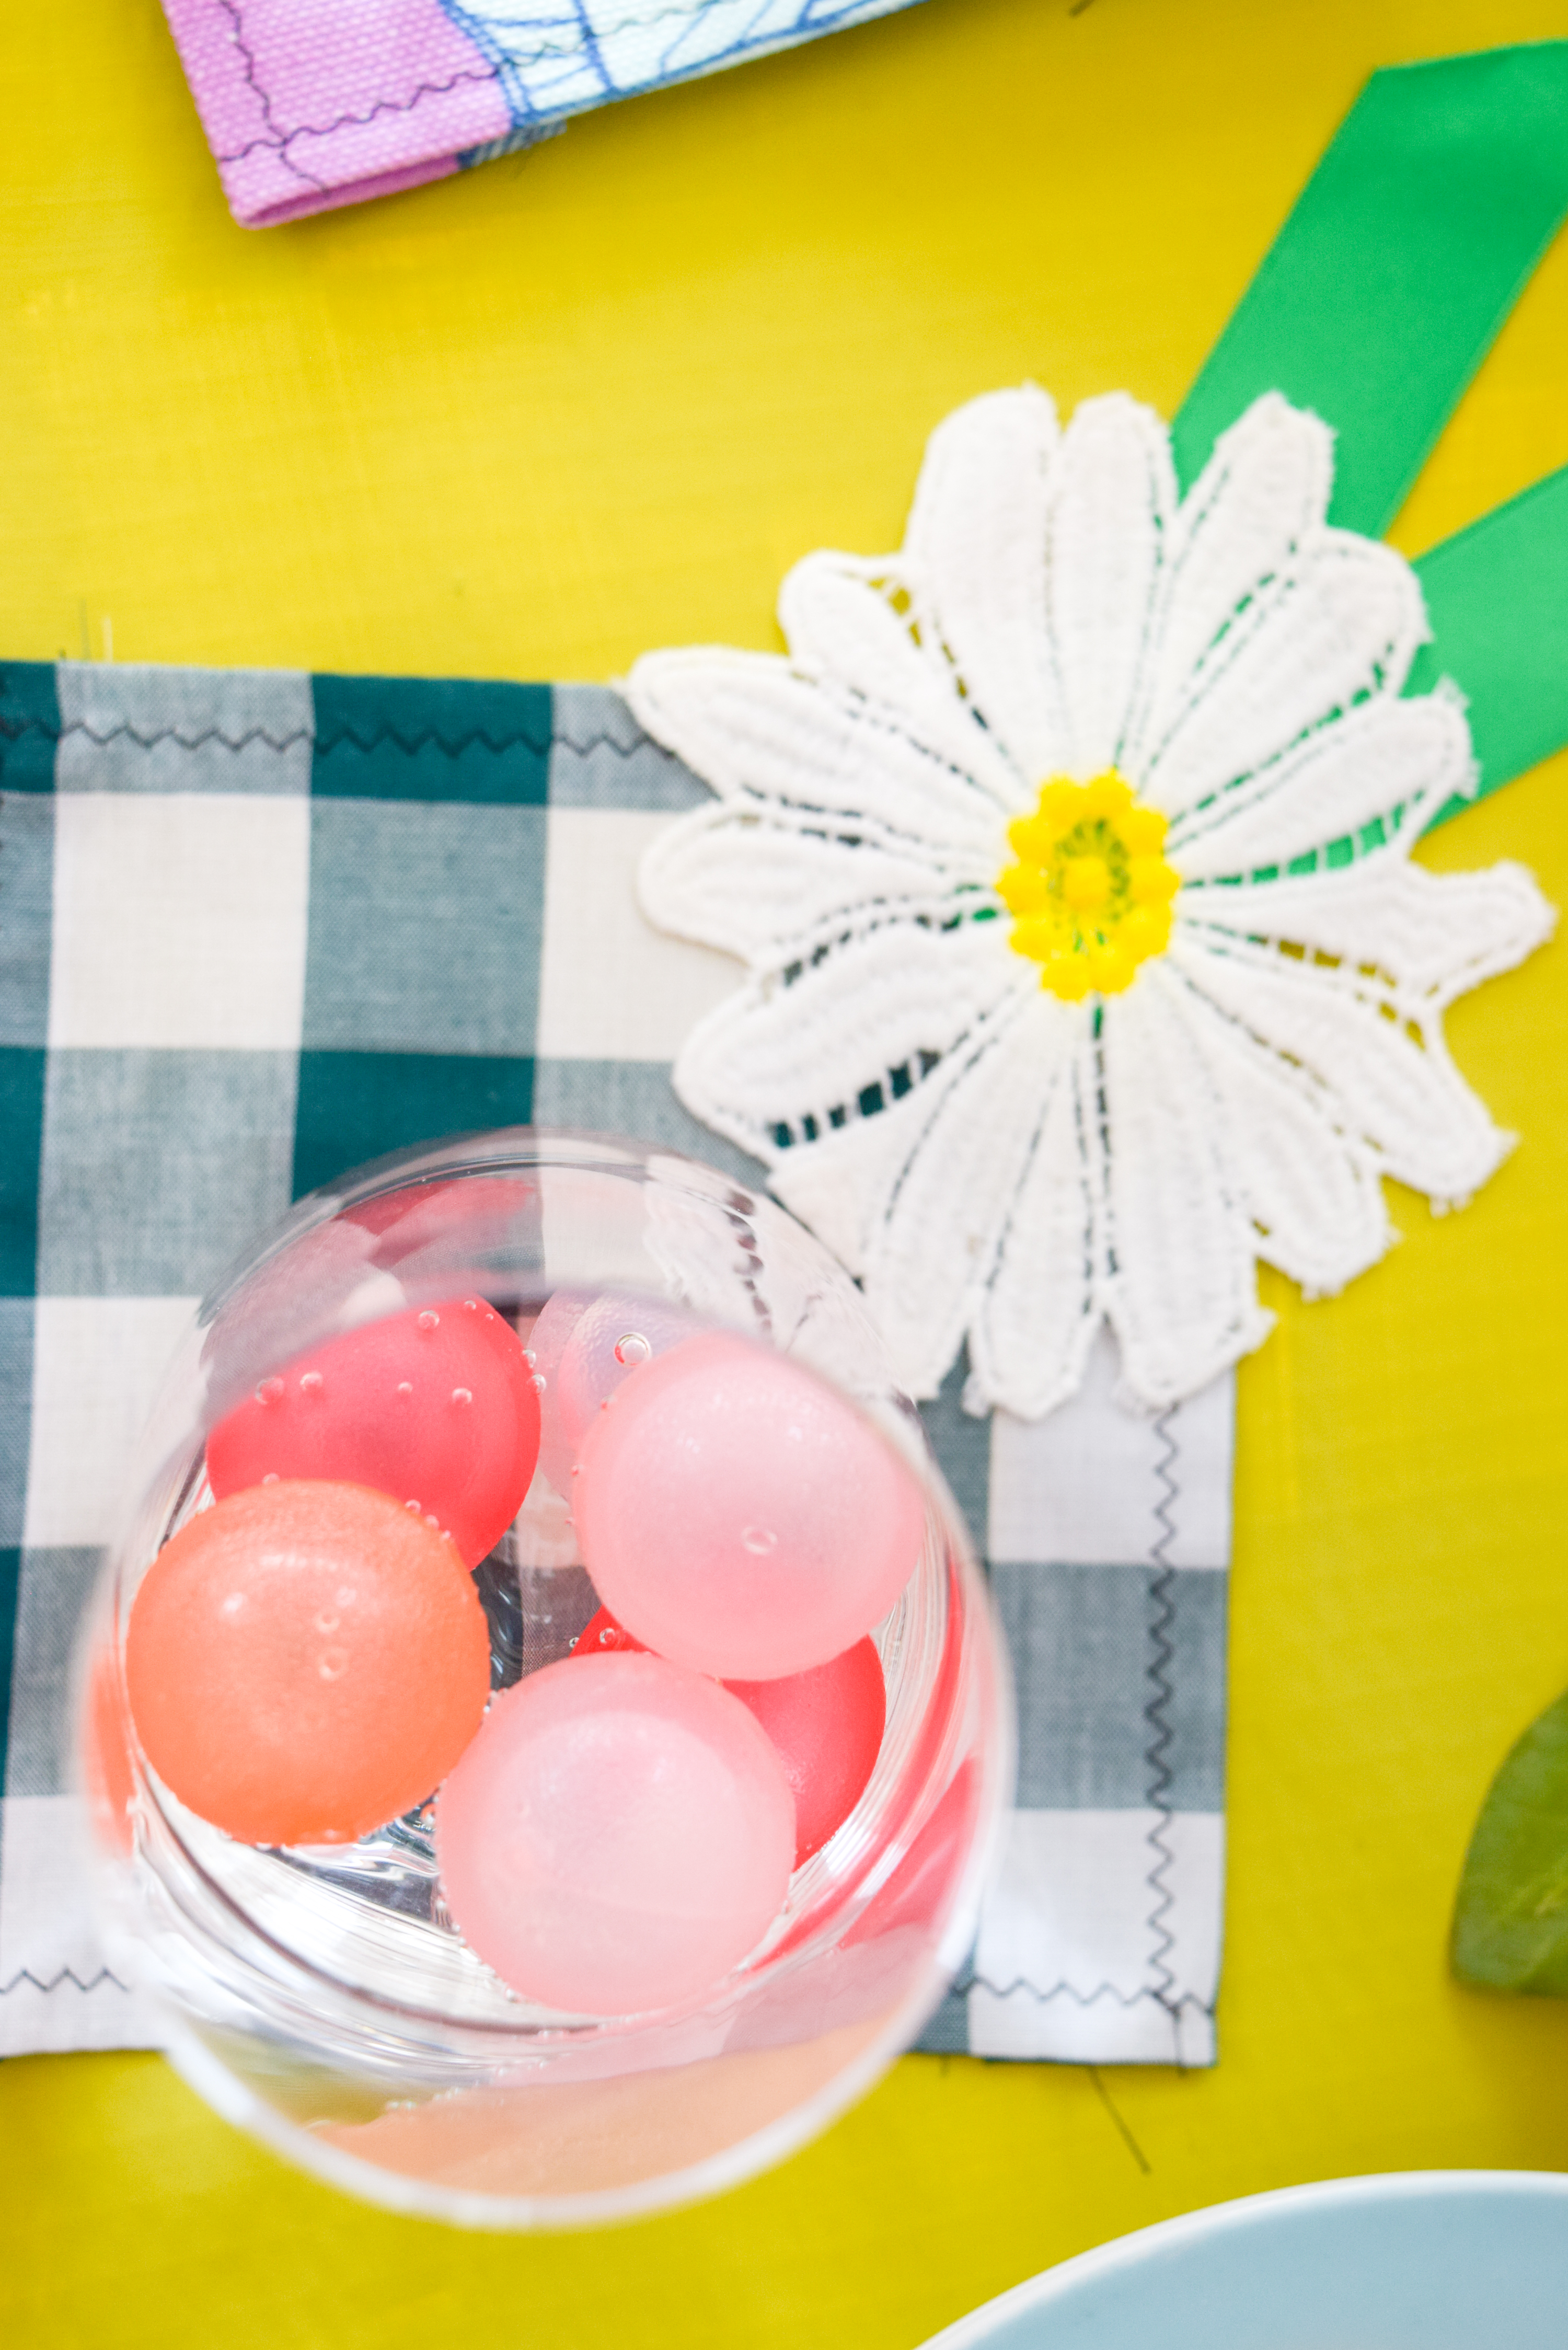 What good is a cocktail, without summer cocktail napkins in fun and breezy colours?! Make your own inspired by these, and get a head start on summer entertaining and your summer bar cart.